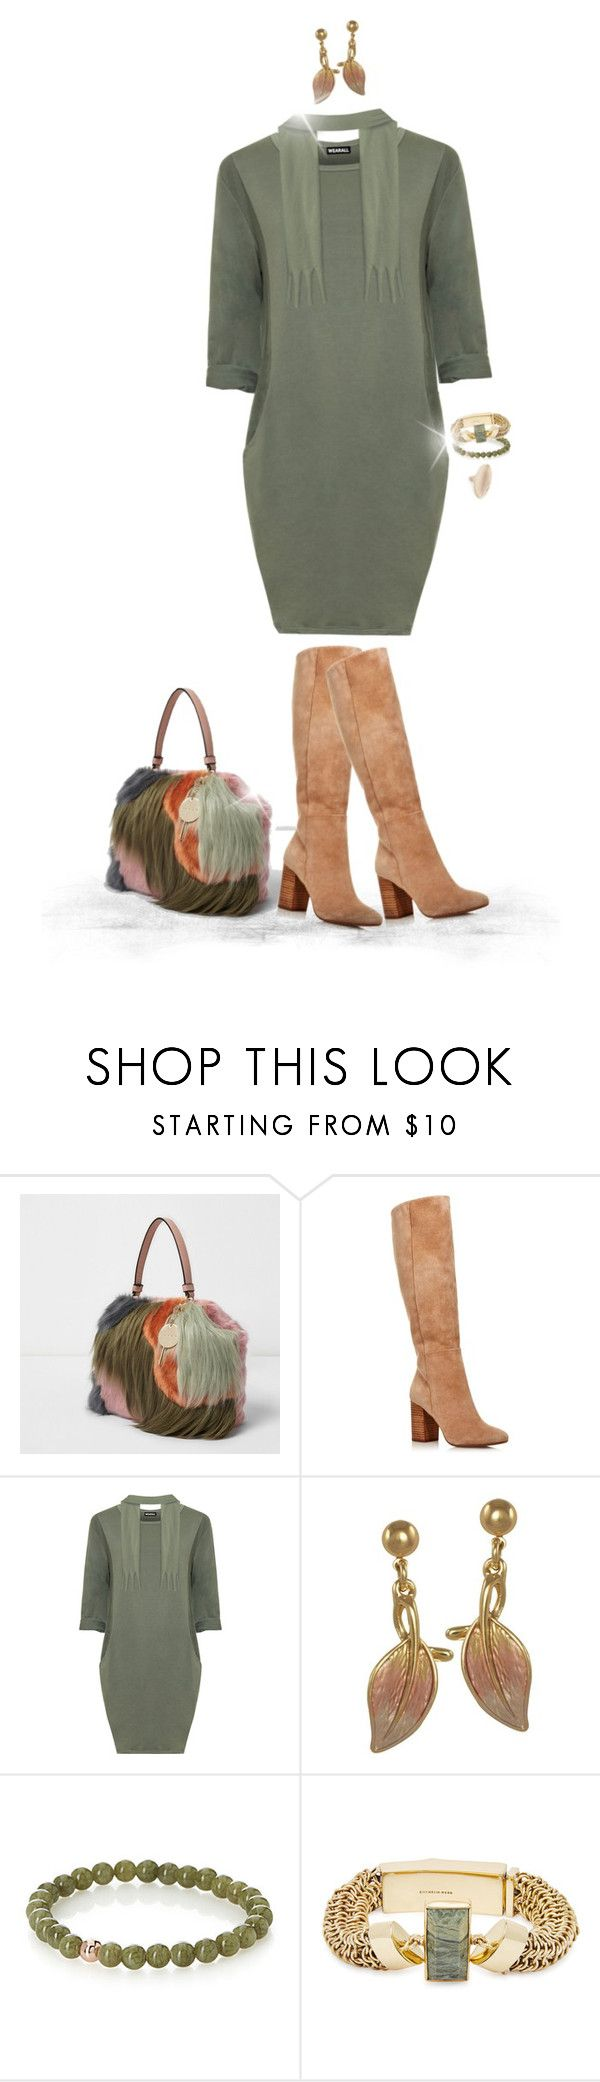 """""""Sweater Dress, Boots, & Faux Fur Purse"""" by joy2thahworld ❤ liked on Polyvore featuring River Island, Kenneth Cole, WearAll, Simons, Cornelia Webb, Alexis Bittar, Boots, contestentry, fauxfur and sweaterdresses"""